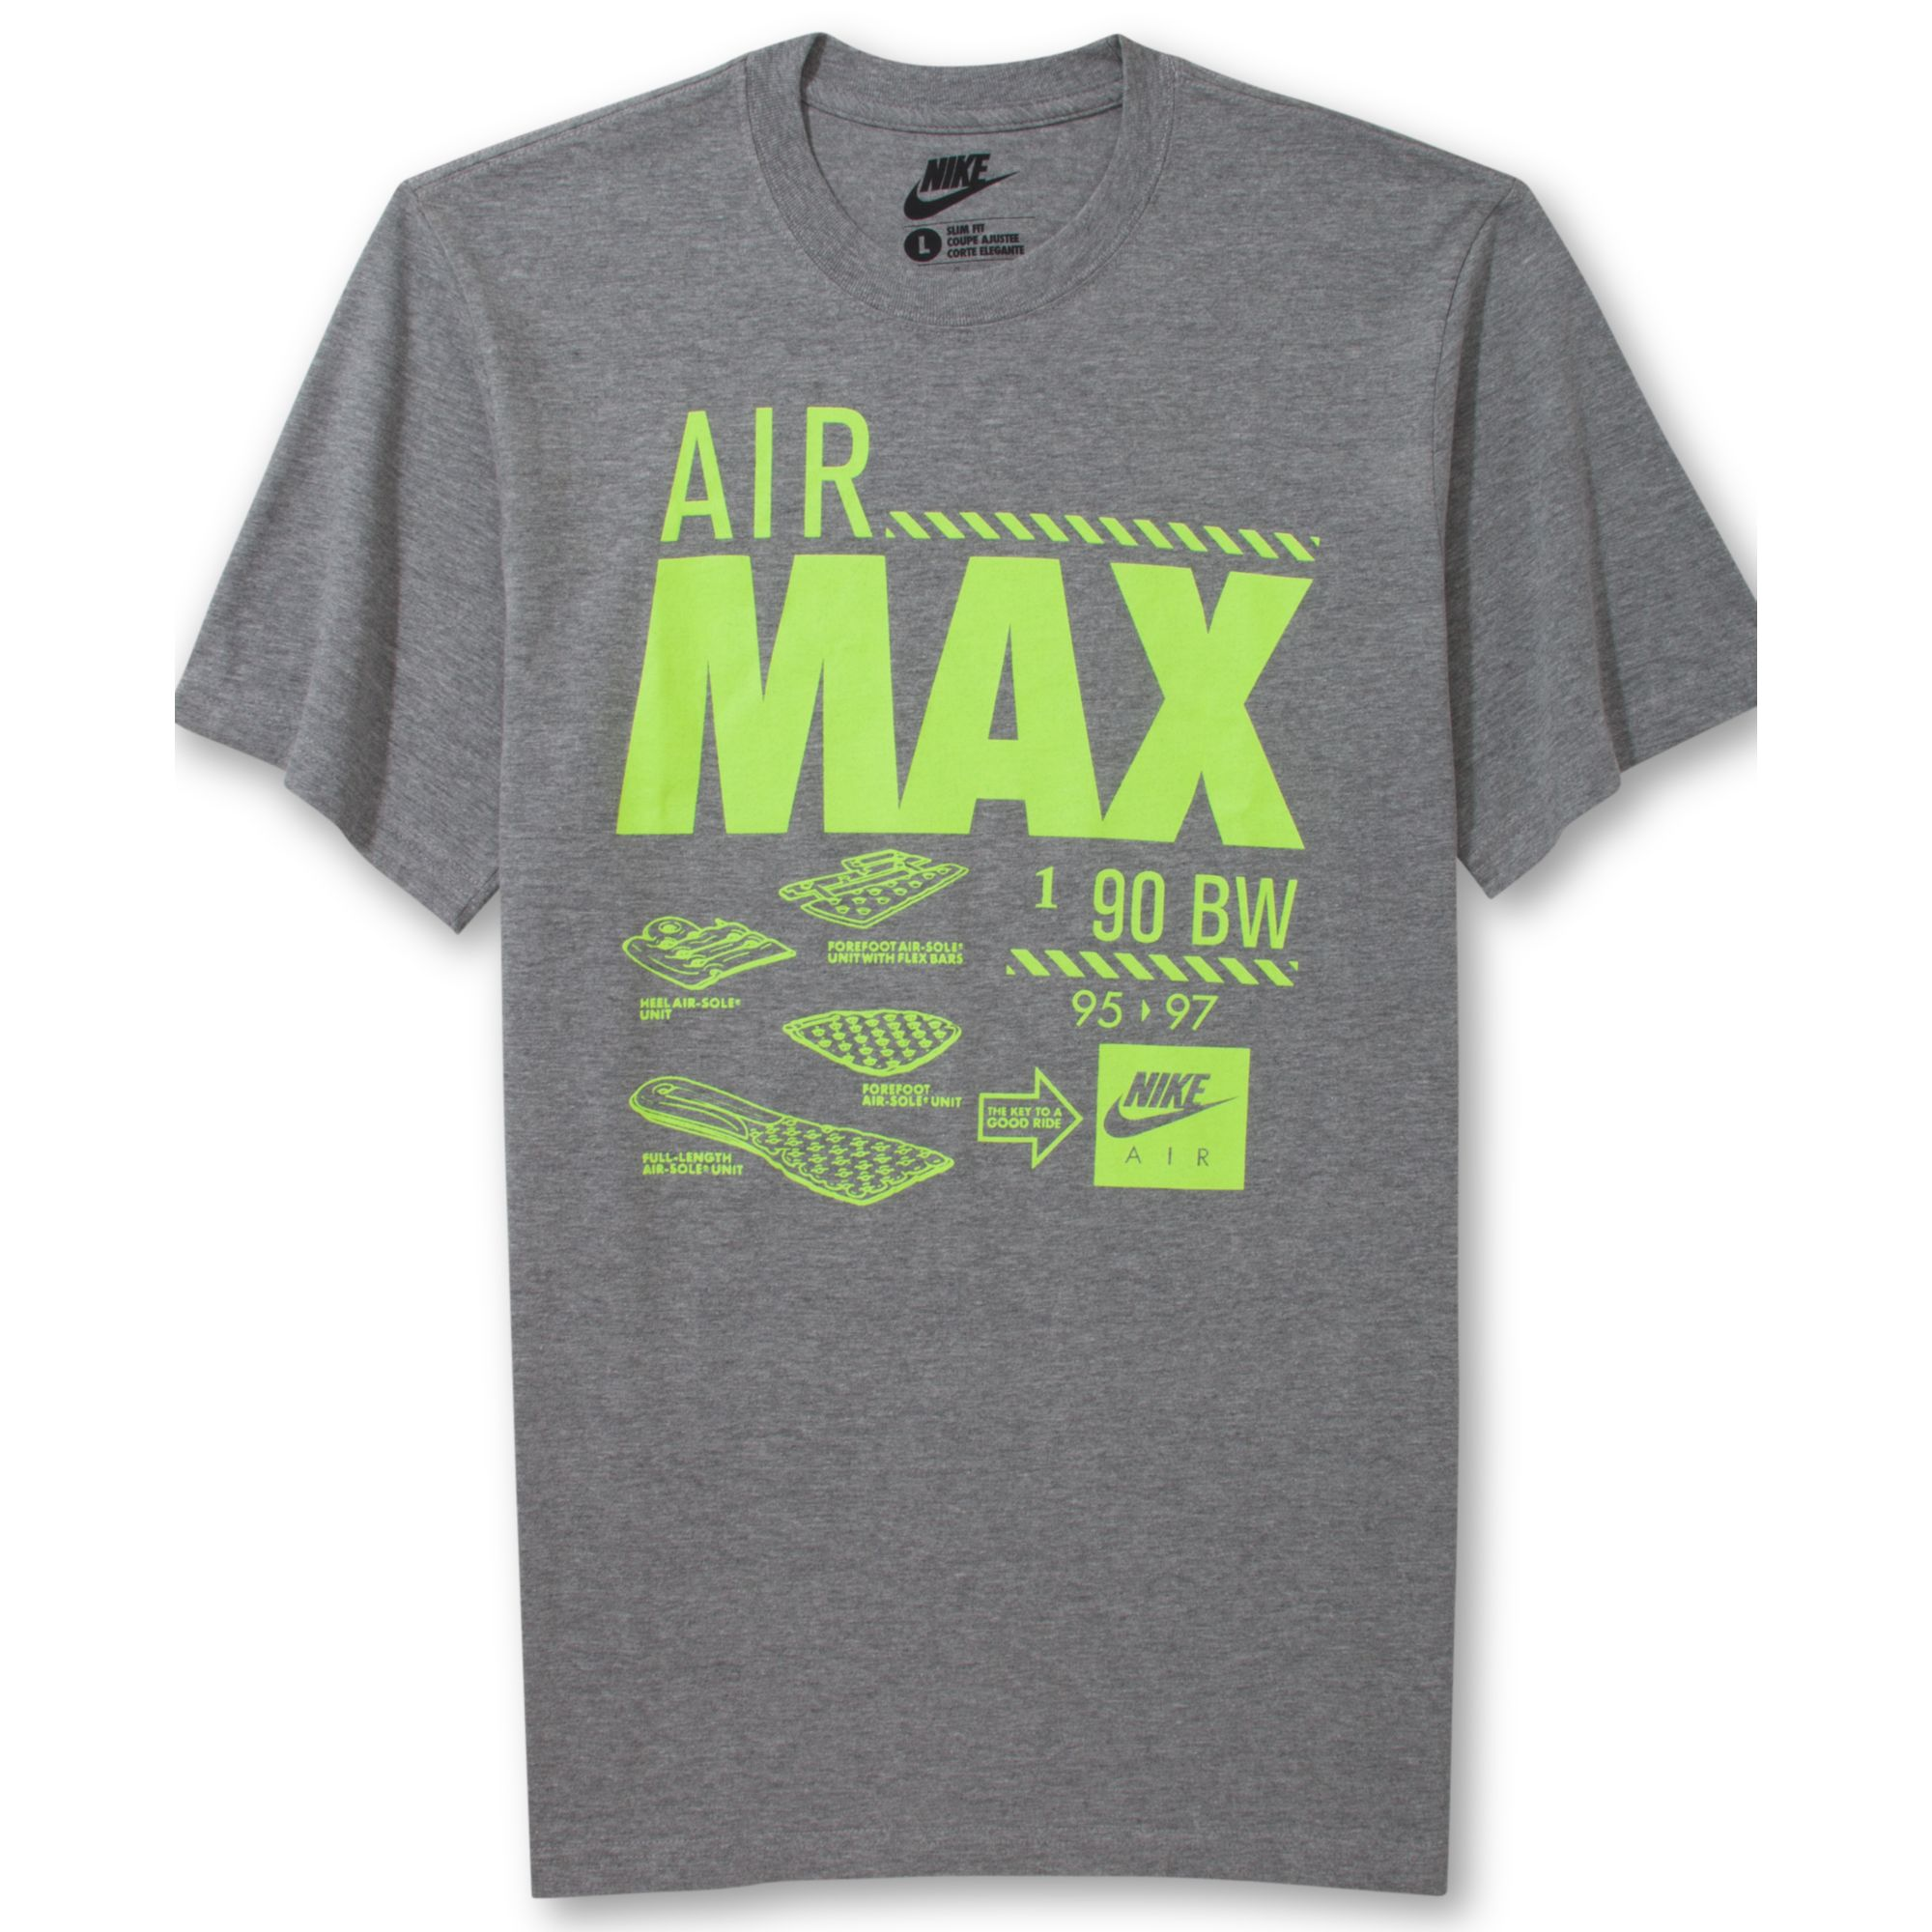 lyst nike air max tshirt in gray for men. Black Bedroom Furniture Sets. Home Design Ideas